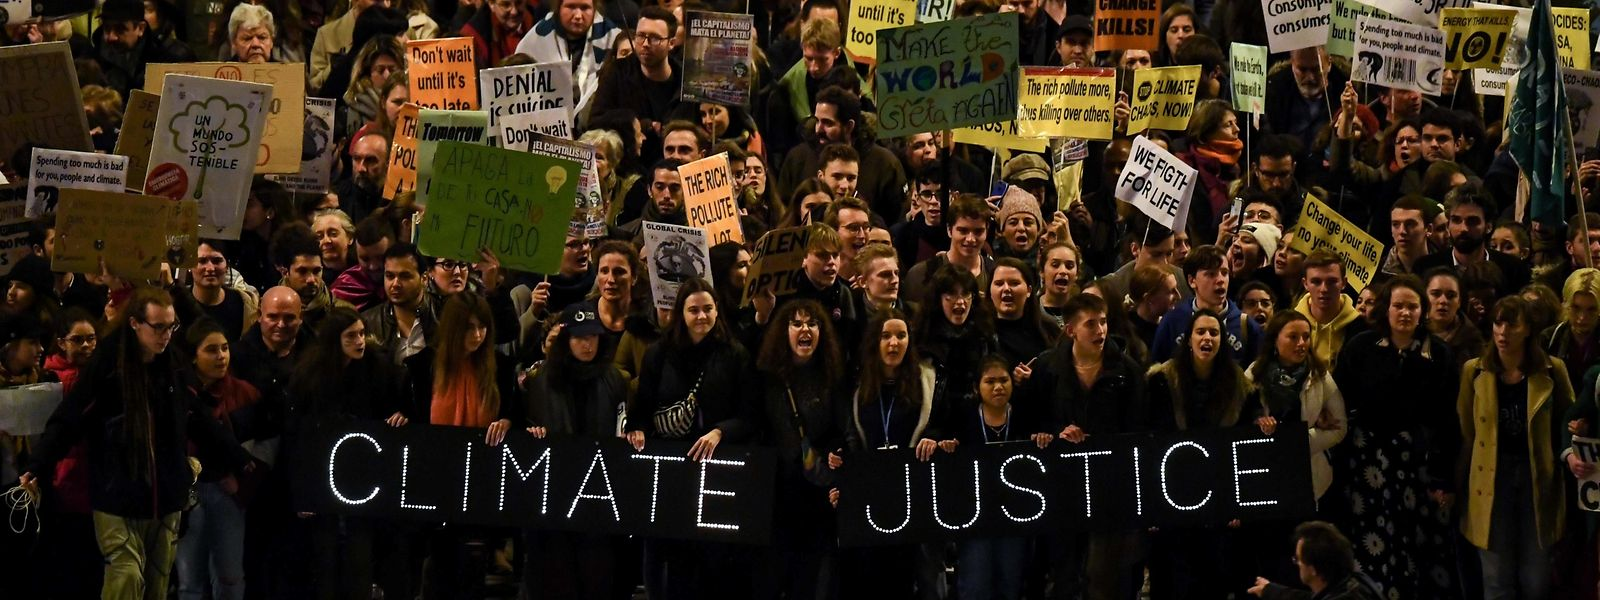 "Demonstrators hold a banner reading ""Climate Justice"" during a mass climate march to demand urgent action on the climate crisis from world leaders attending the COP25 summit, in Madrid, on December 6, 2019. - The main march takes place in Madrid on the sidelines of the UN climate conference, with a simultaneous rally in the Chilean capital, which had been due to host the 12-day gathering but was forced to pull out due to deadly anti-government protests. (Photo by GABRIEL BOUYS / AFP)"